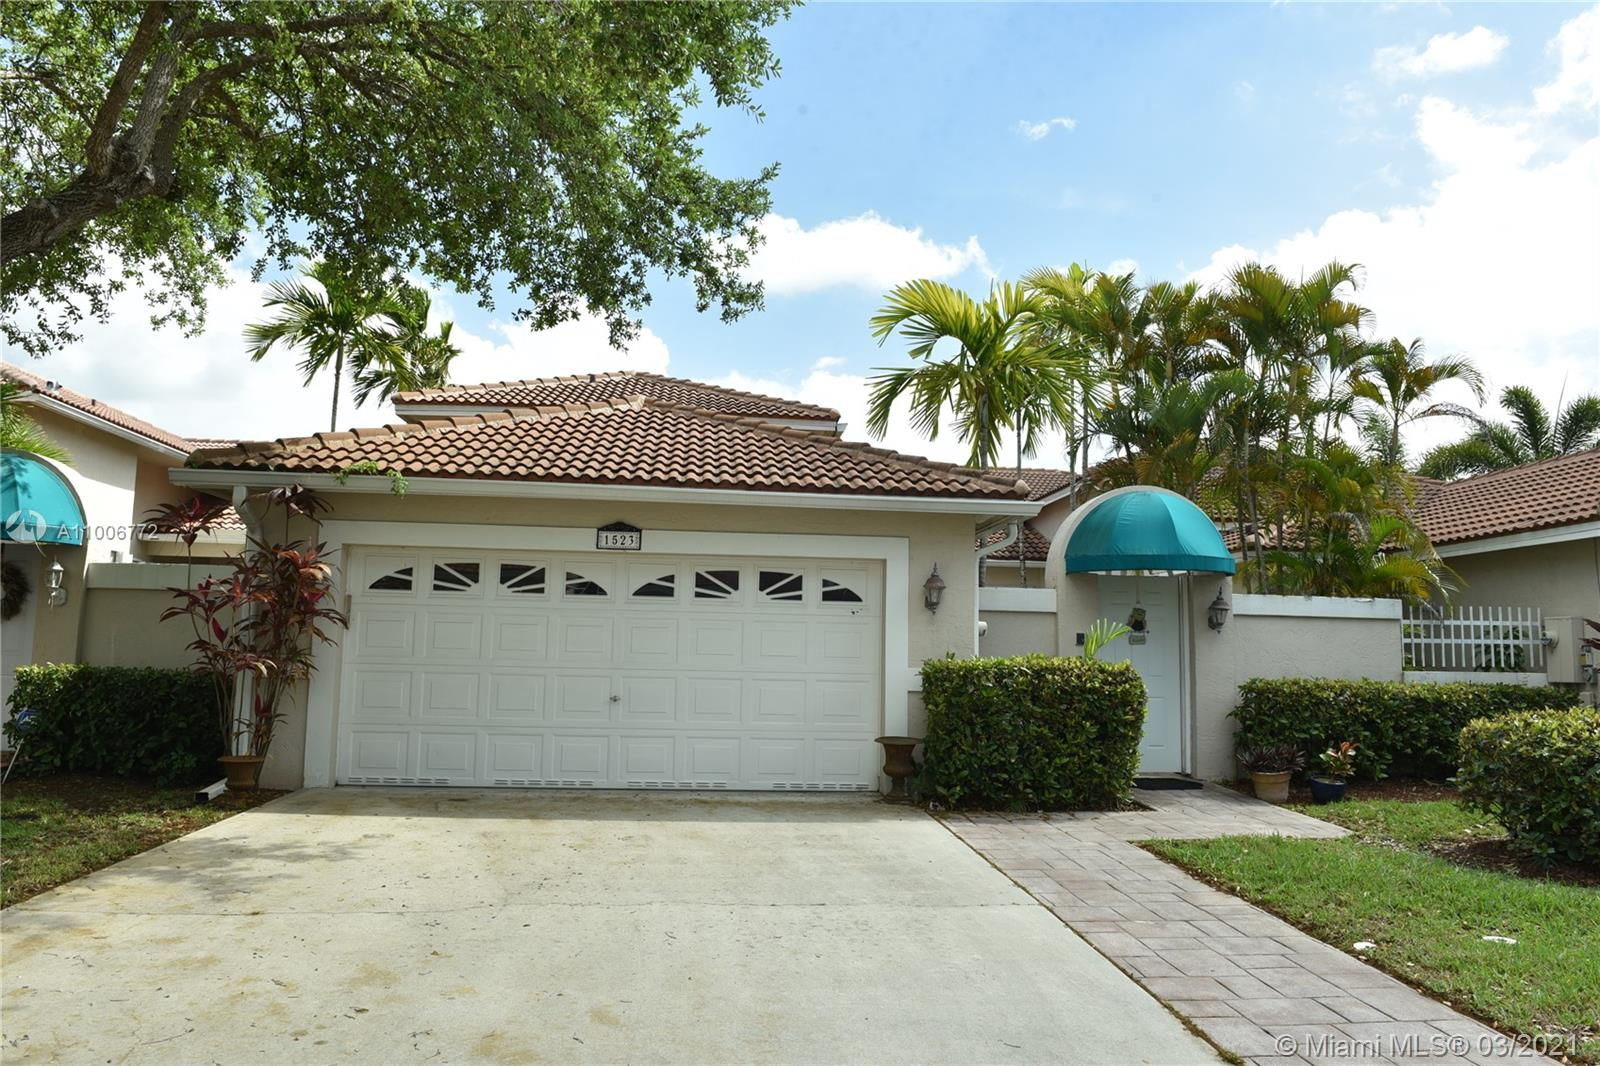 Enjoy this private oasis! Just need some TLC  3 bed,2bath,2car garage lakefront home in desirable Golf gated community of Grand Palms. Open concept layout with tiles in all social areas & Pergo flooring in living areas. Master suite with  w/his-her closets ,vanities, bathroom with shower & roman tub. Home offers outdoor living with large private courtyard great for BBQ's. Newer roof -5yrs. Ceiling fans in all rooms & social areas, newer appliances, laundry room!  Great  Encino gated community POOL. Lawn service, cable, ADT alarm and man guard gate included. great location close to A+ schools, shopping, dining, highways and transportation.